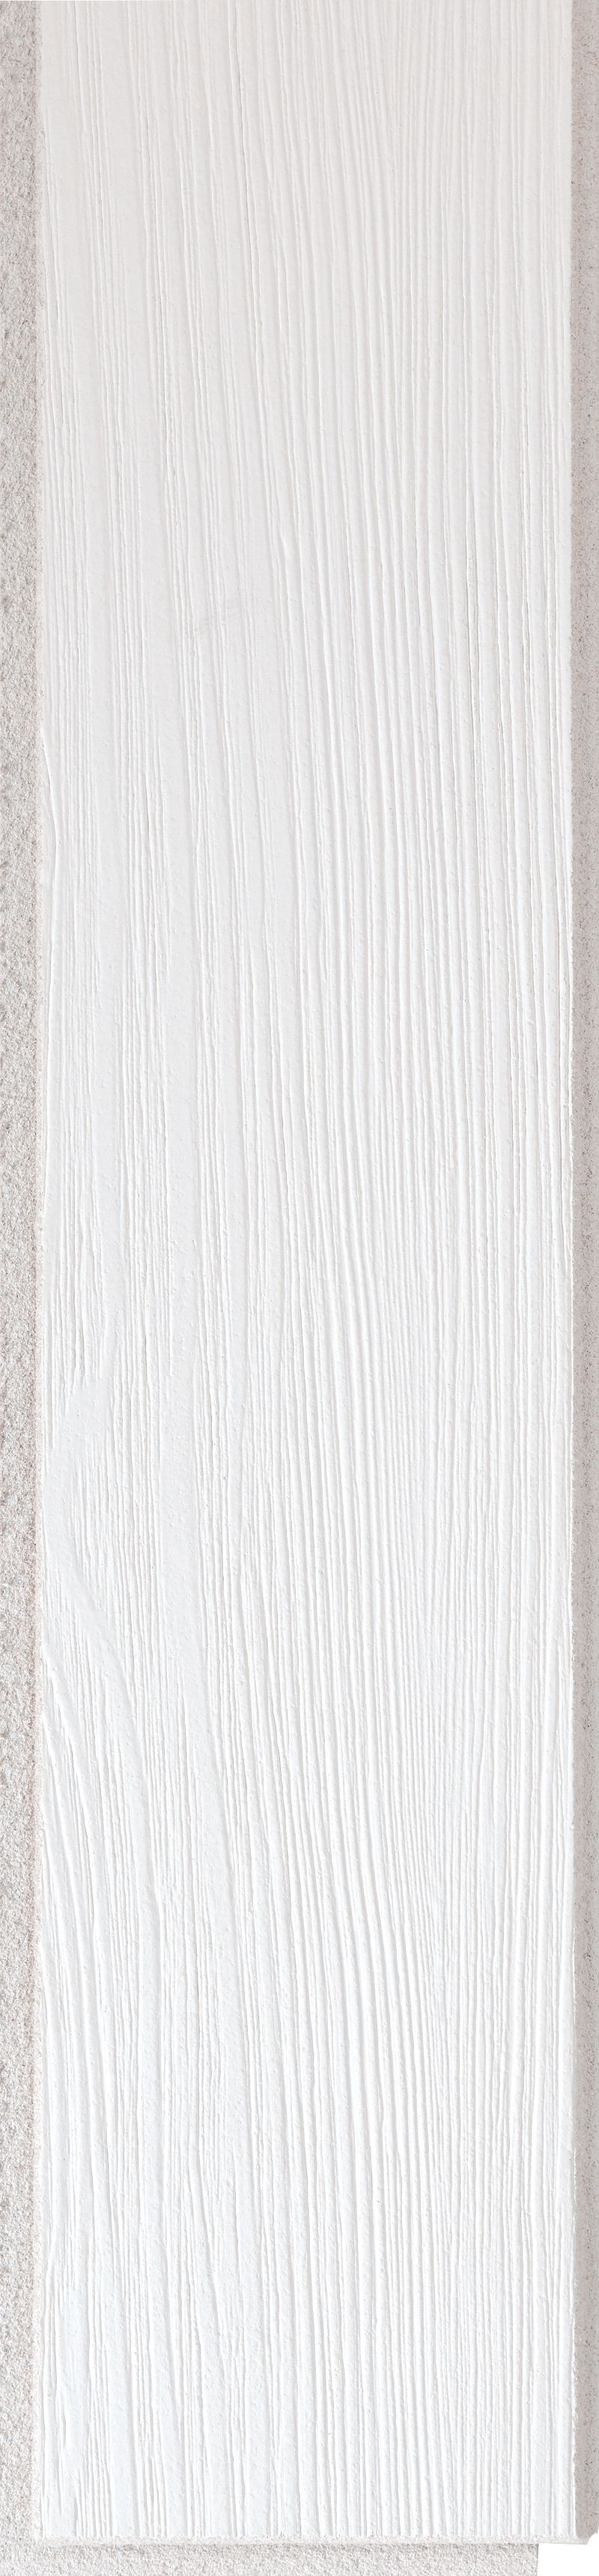 Cover popcorn ceilings armstrong ceilings residential country classic plank white 6 x dailygadgetfo Choice Image